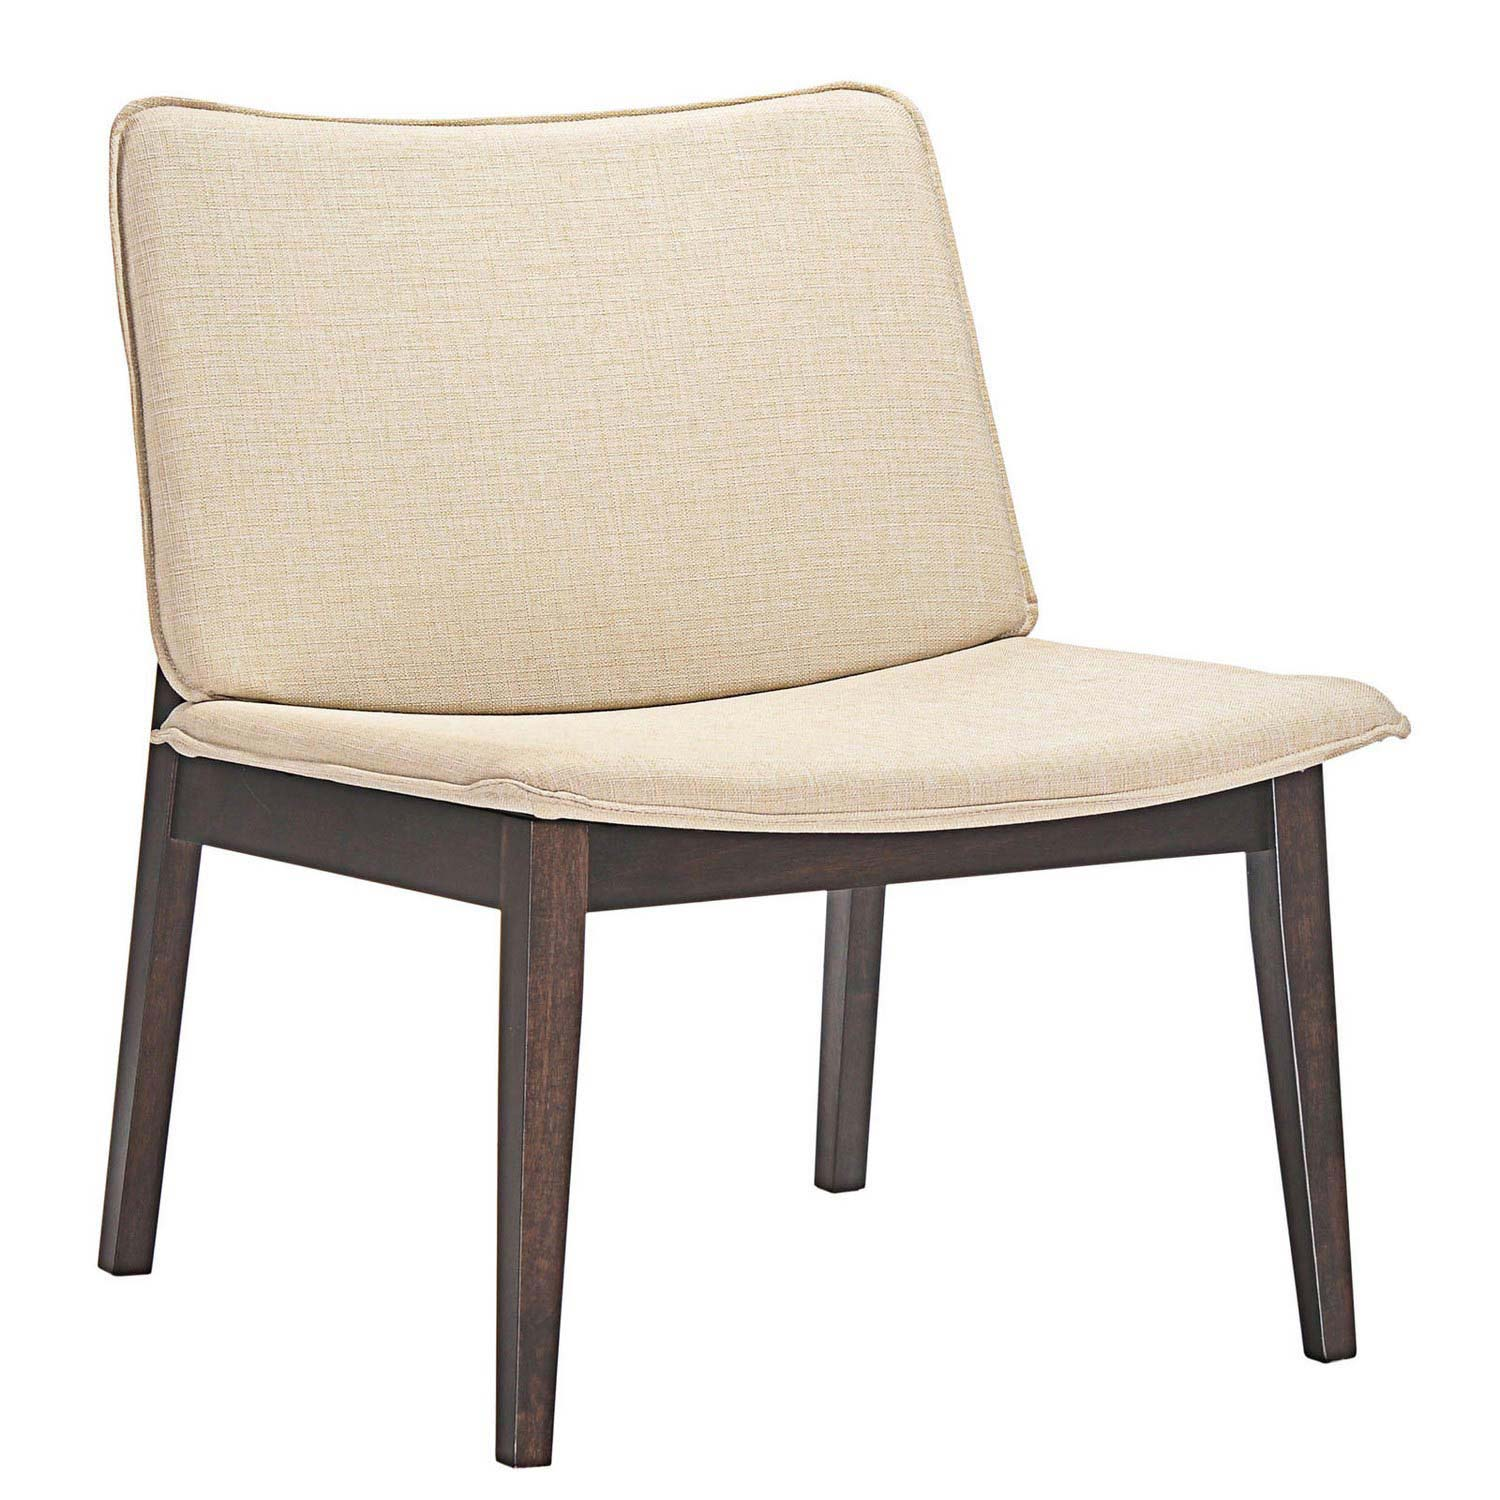 Modway Evade Lounge Chair - Walnut Beige